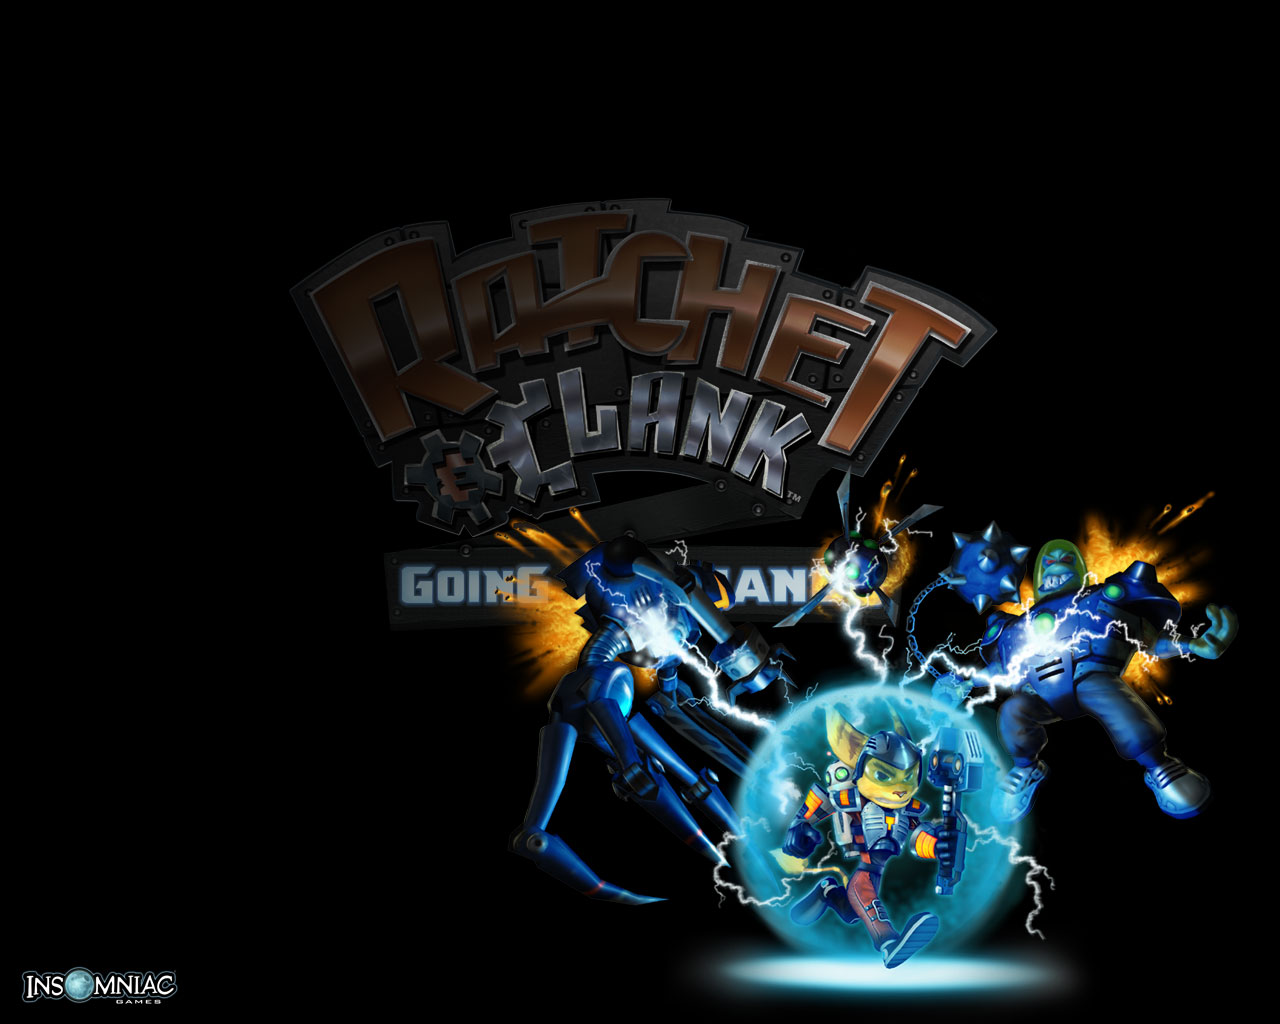 Wallpapers Ratchet Clank Going Commando Ps2 Ratchet Galaxy